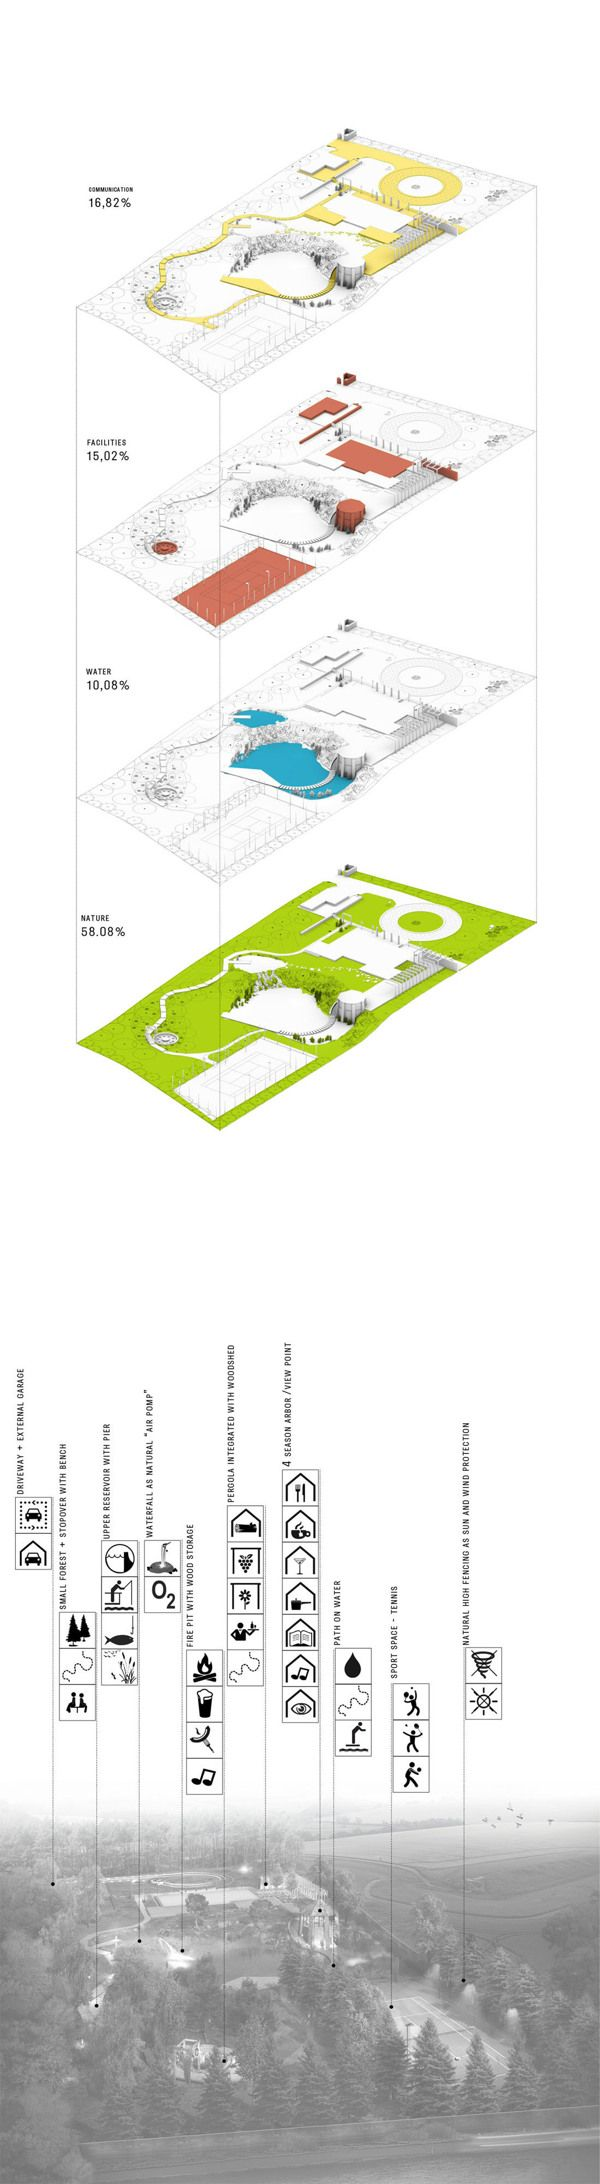 03. REPRESENT A SPACE **************** [GreenStone Garden - Landscape project by Konrad Wójcik, via Behance]